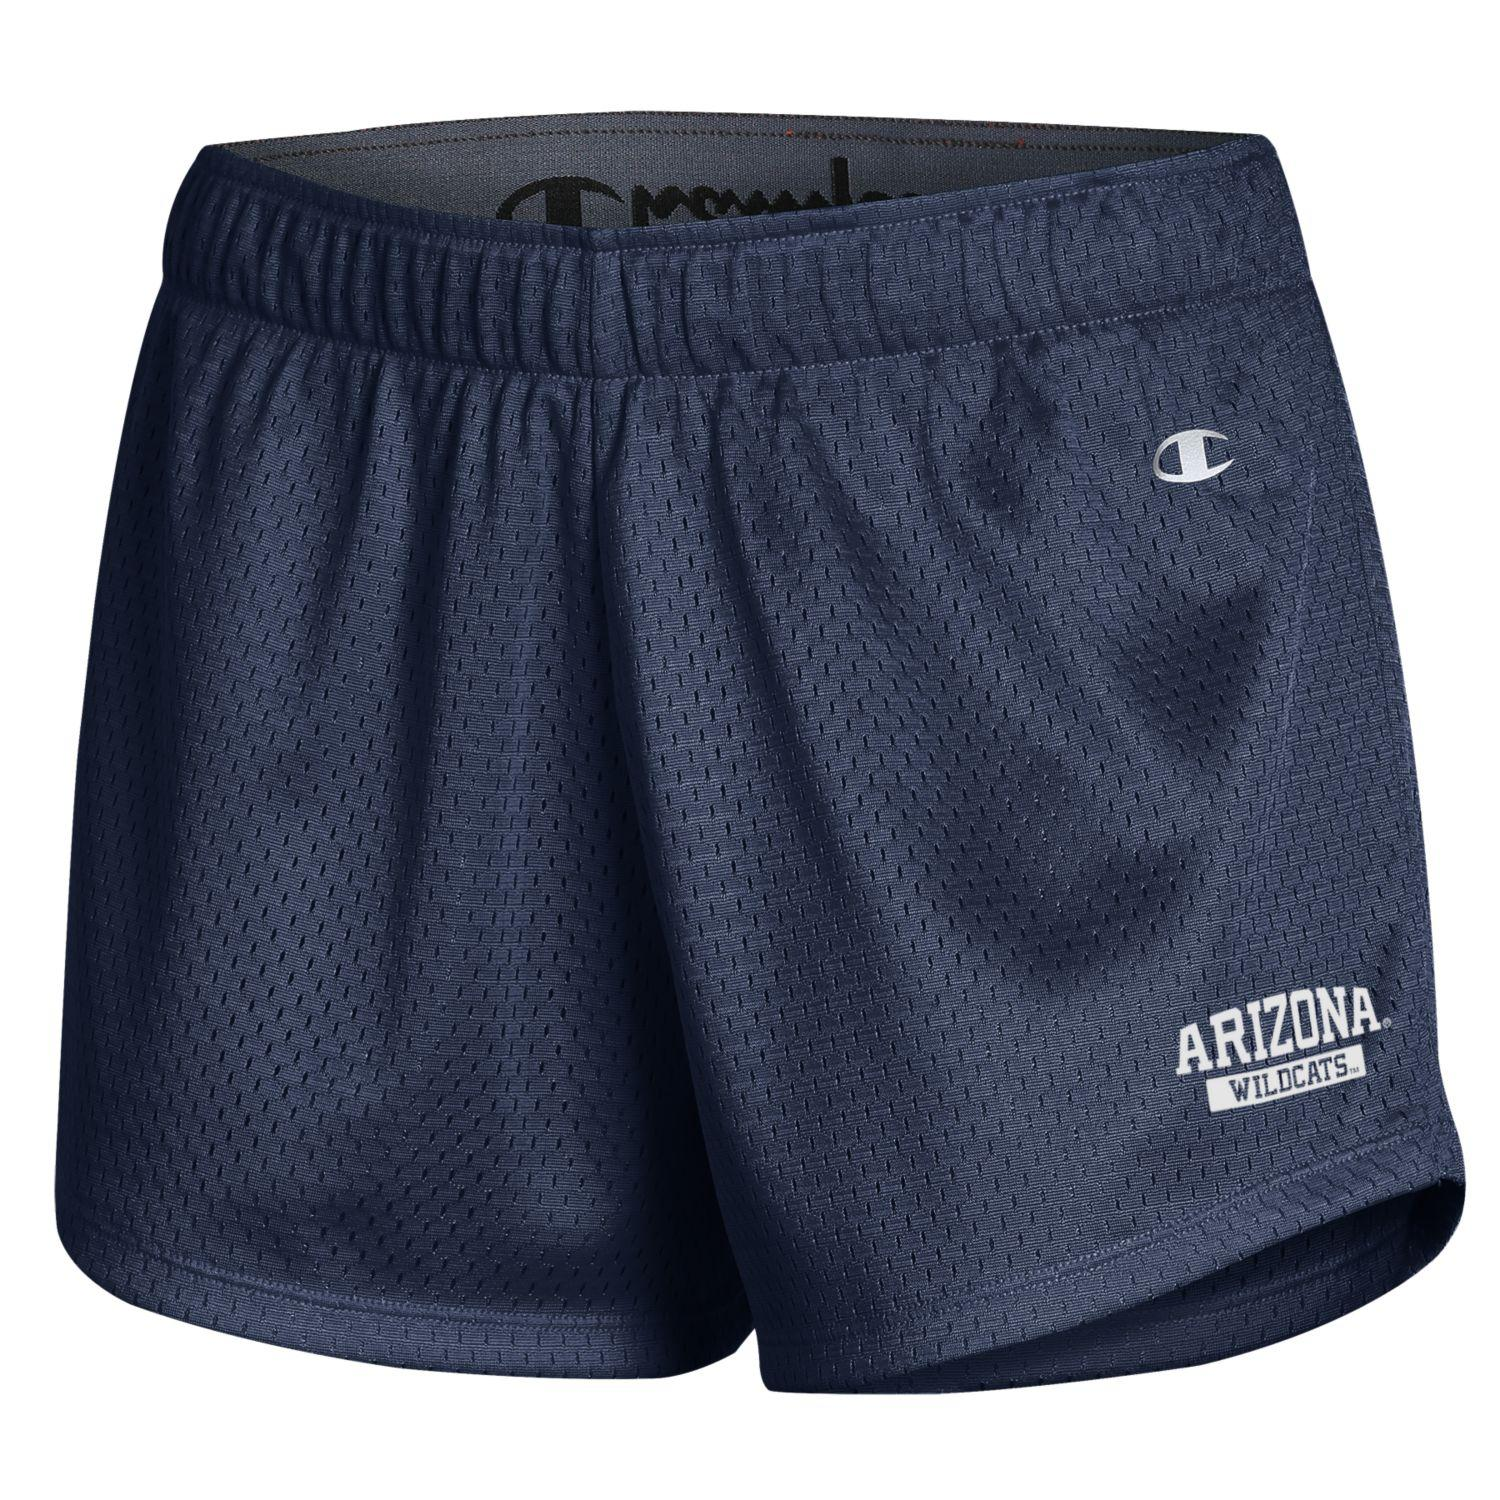 Image For Champion: Arizona Wildcats Mesh Shorts - Navy